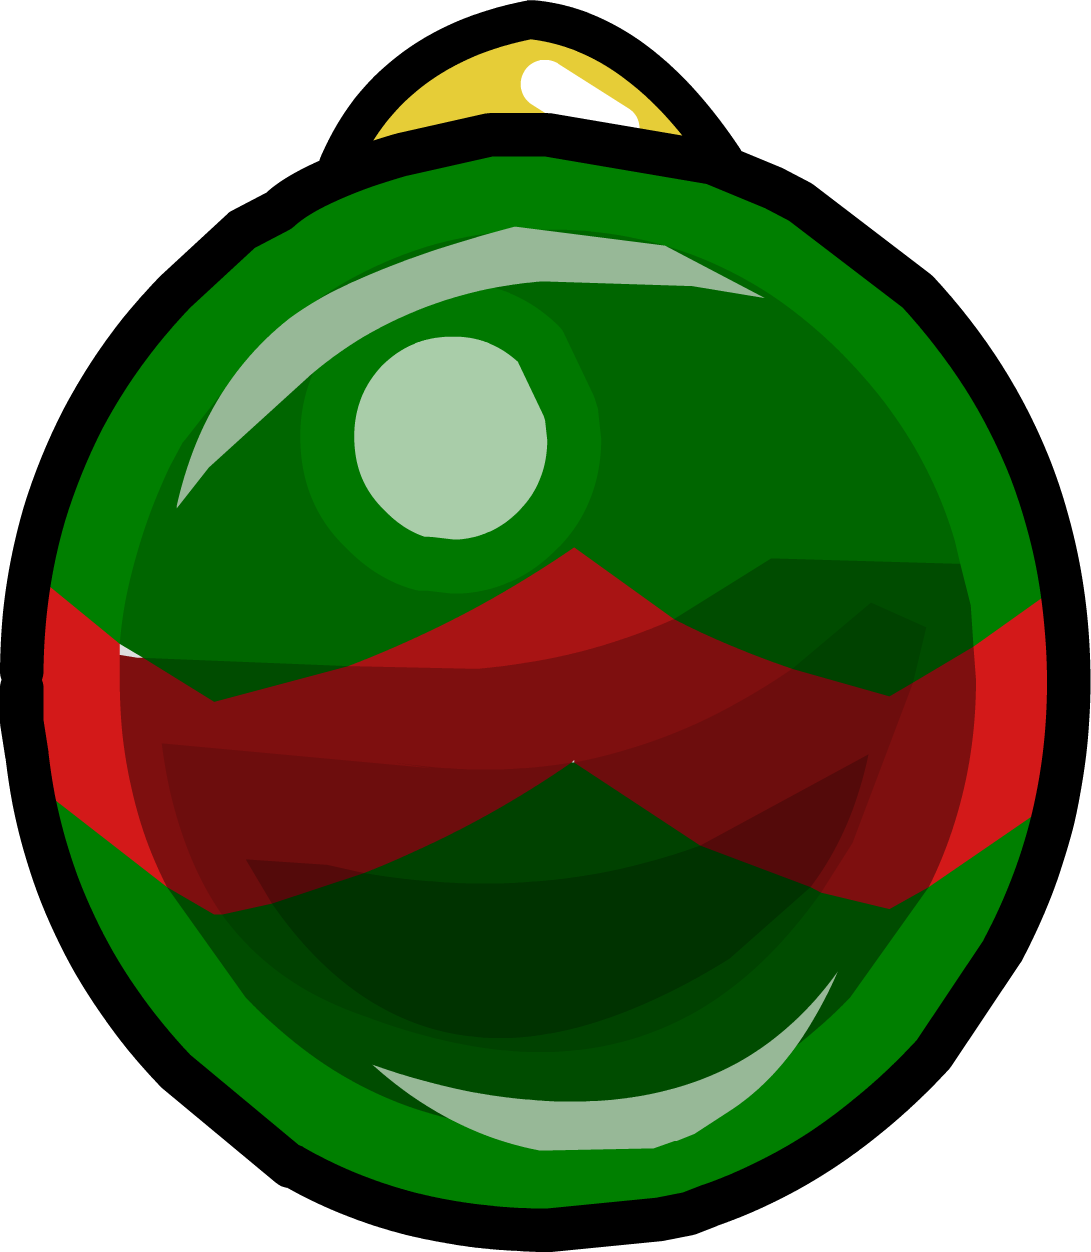 Green and Red Bauble